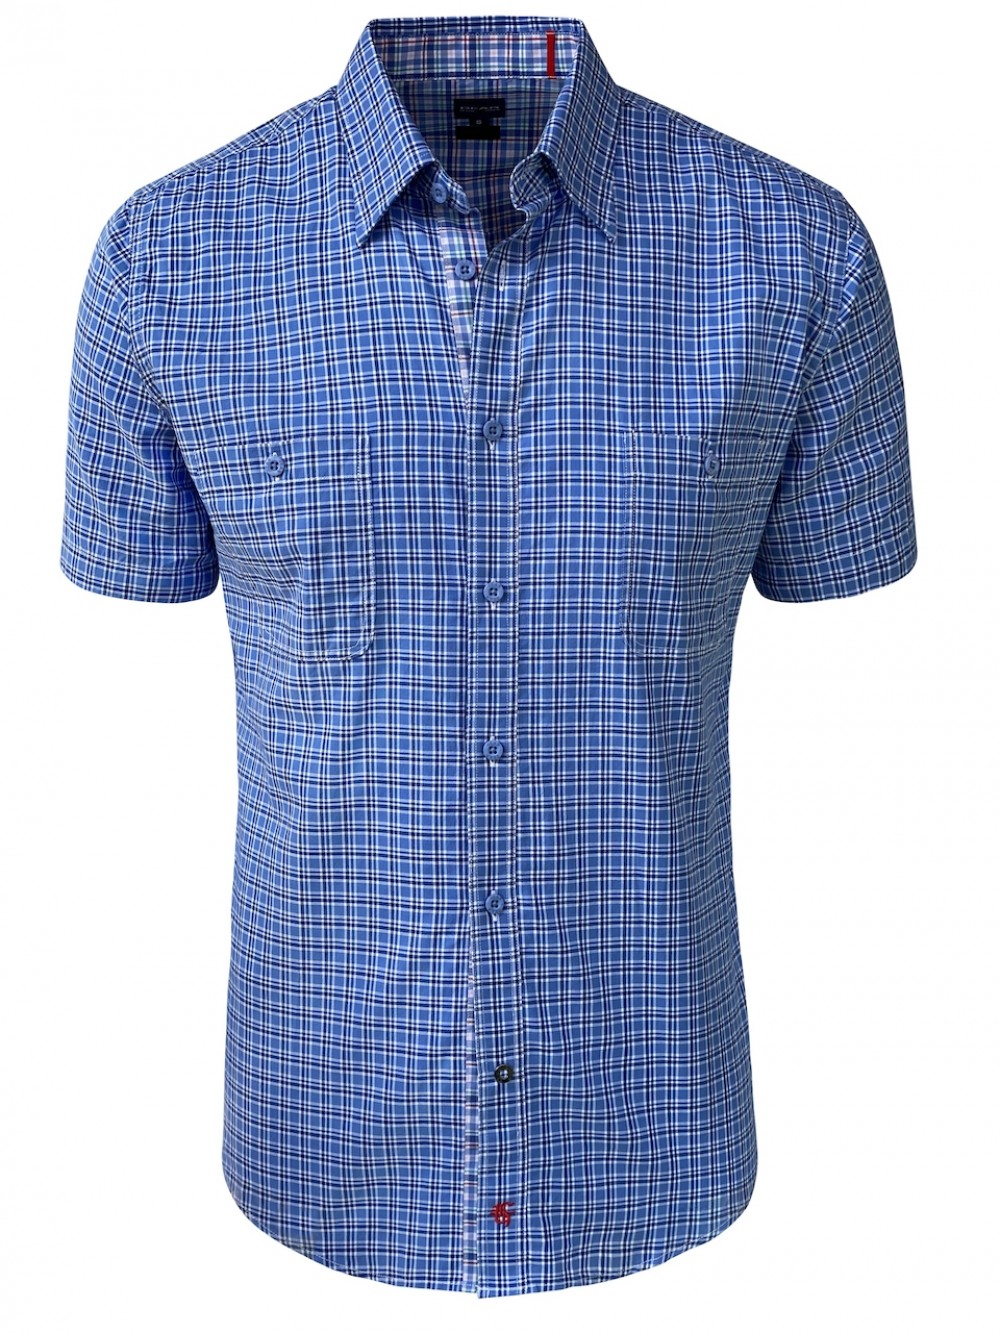 Mens Slim Fit Shirt CRISTIAN SHM1298 blue